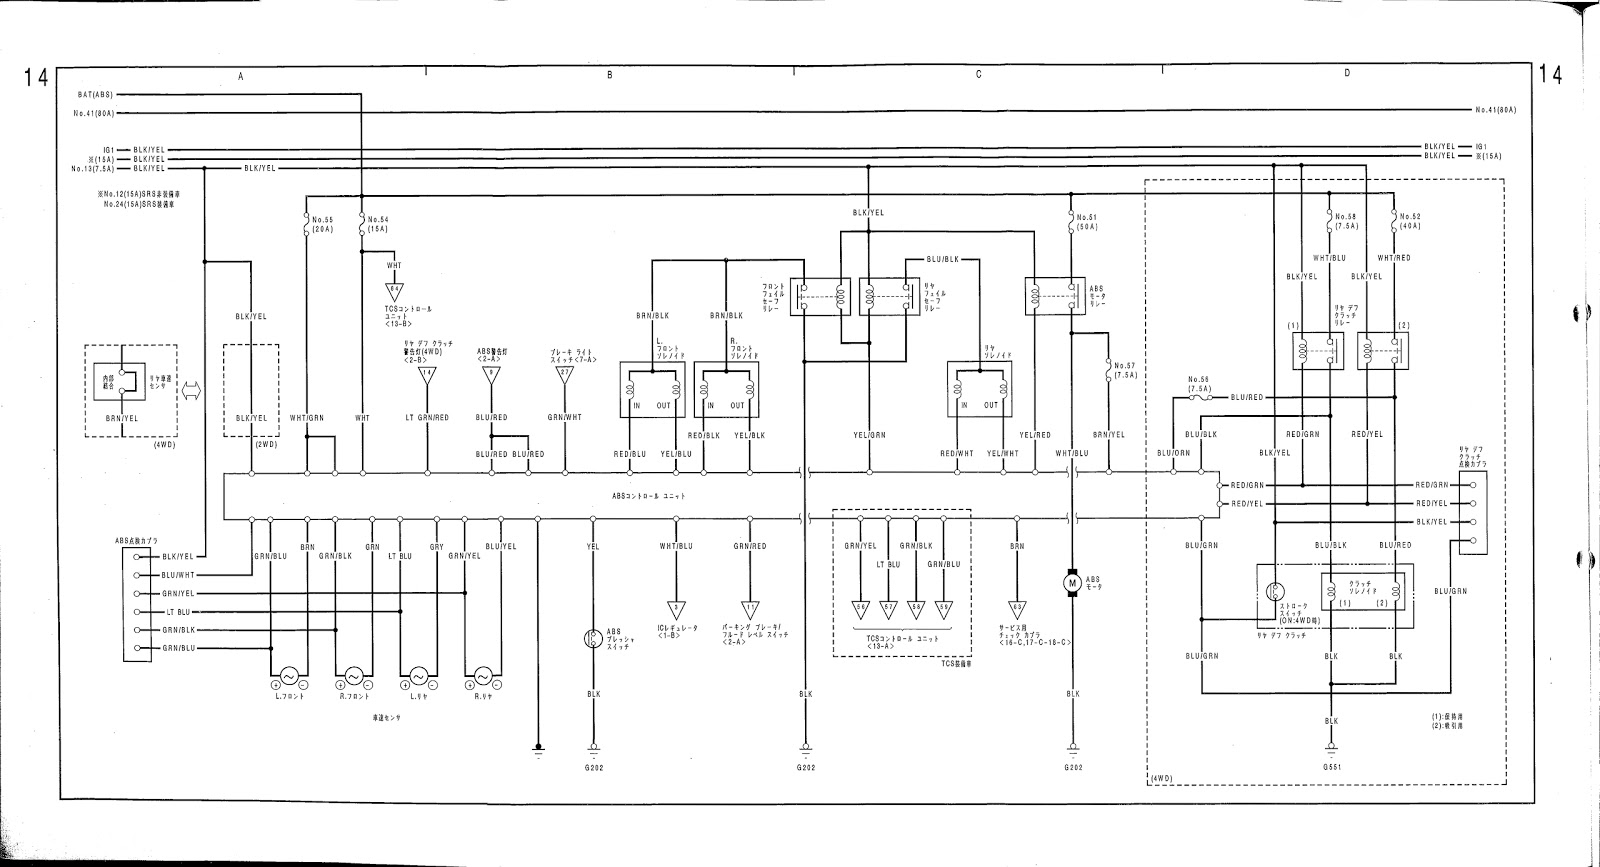 kiefer wiring diagram kenwood ddx418 wiring diagram circuit diagram maker kiefer built trailer wiring diagram #1